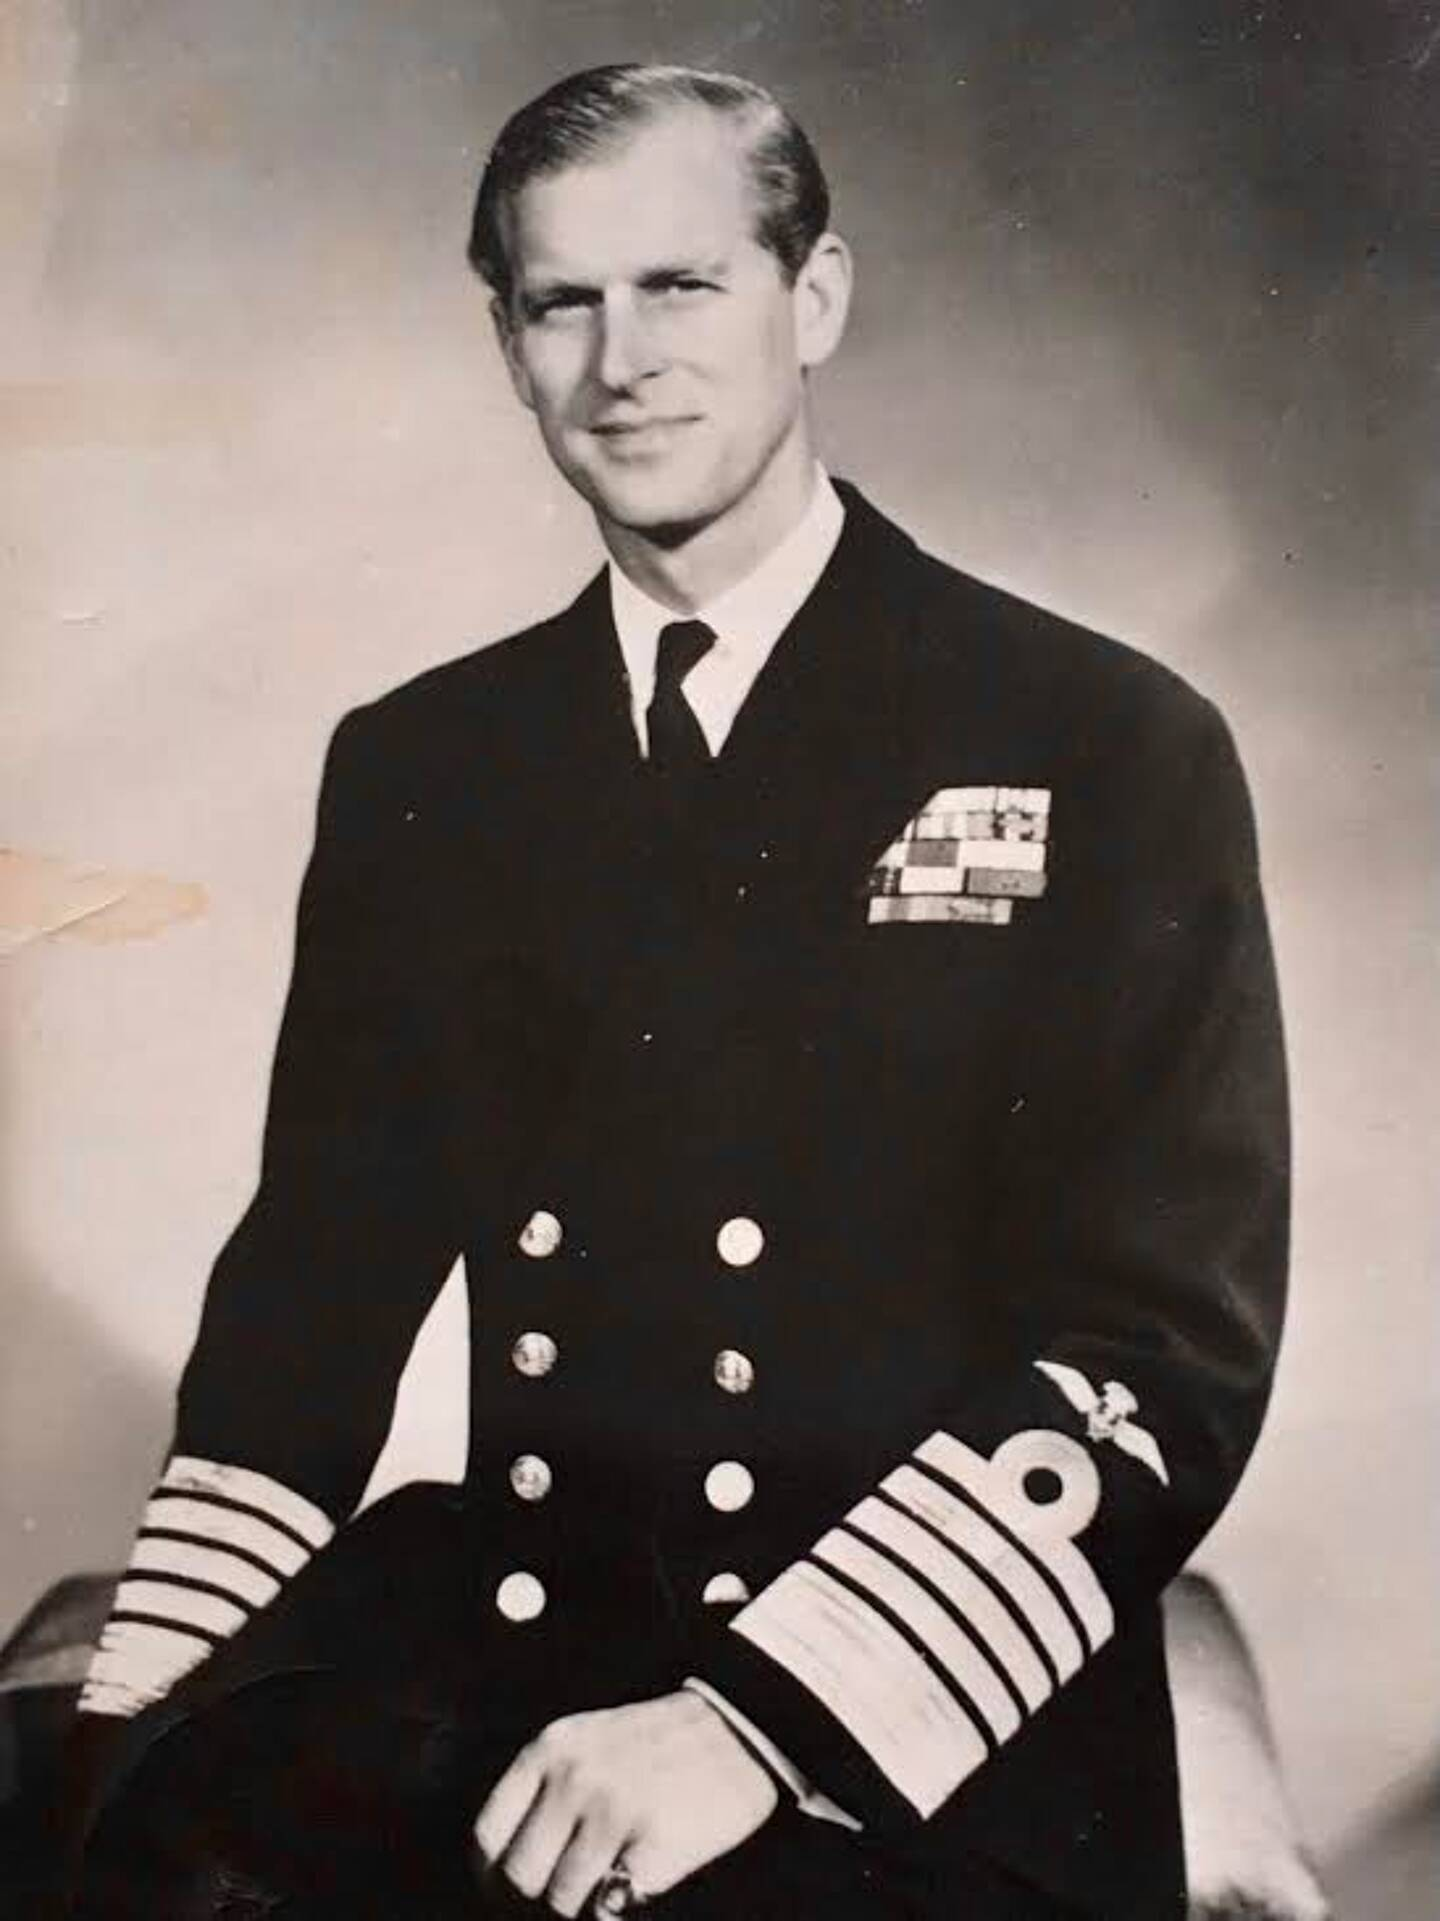 Lord Mountbatten, ancien de la Royal Navy